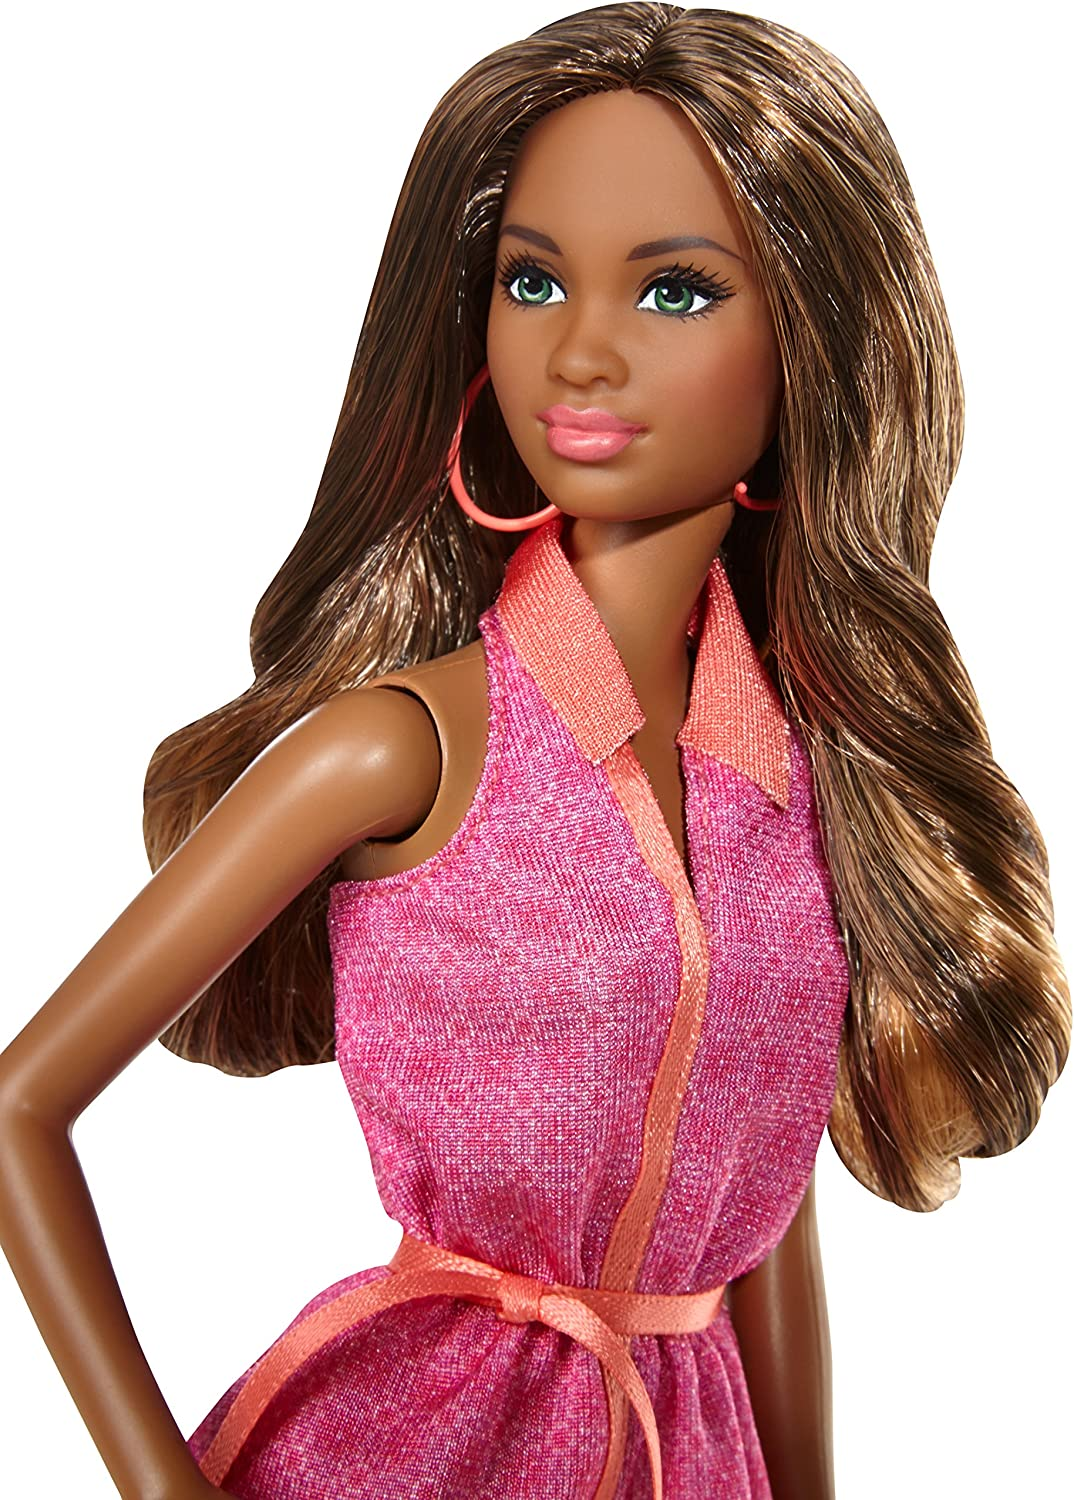 Barbie Fashionistas 2015 CJV75 Grace African American Doll Mattel NEW SOLD OUT